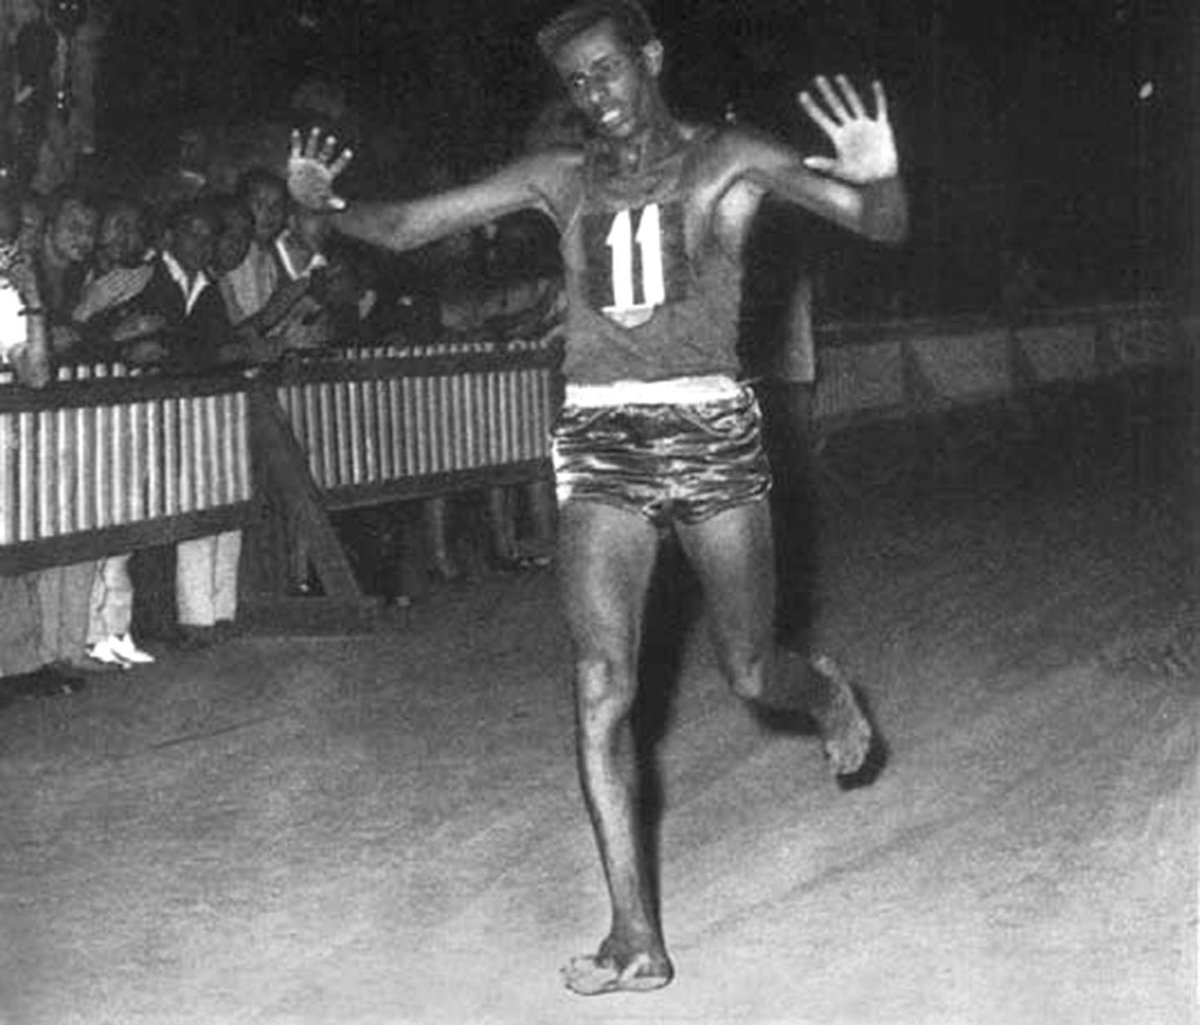 abebe bikila running barefoot in the 1956 olympics